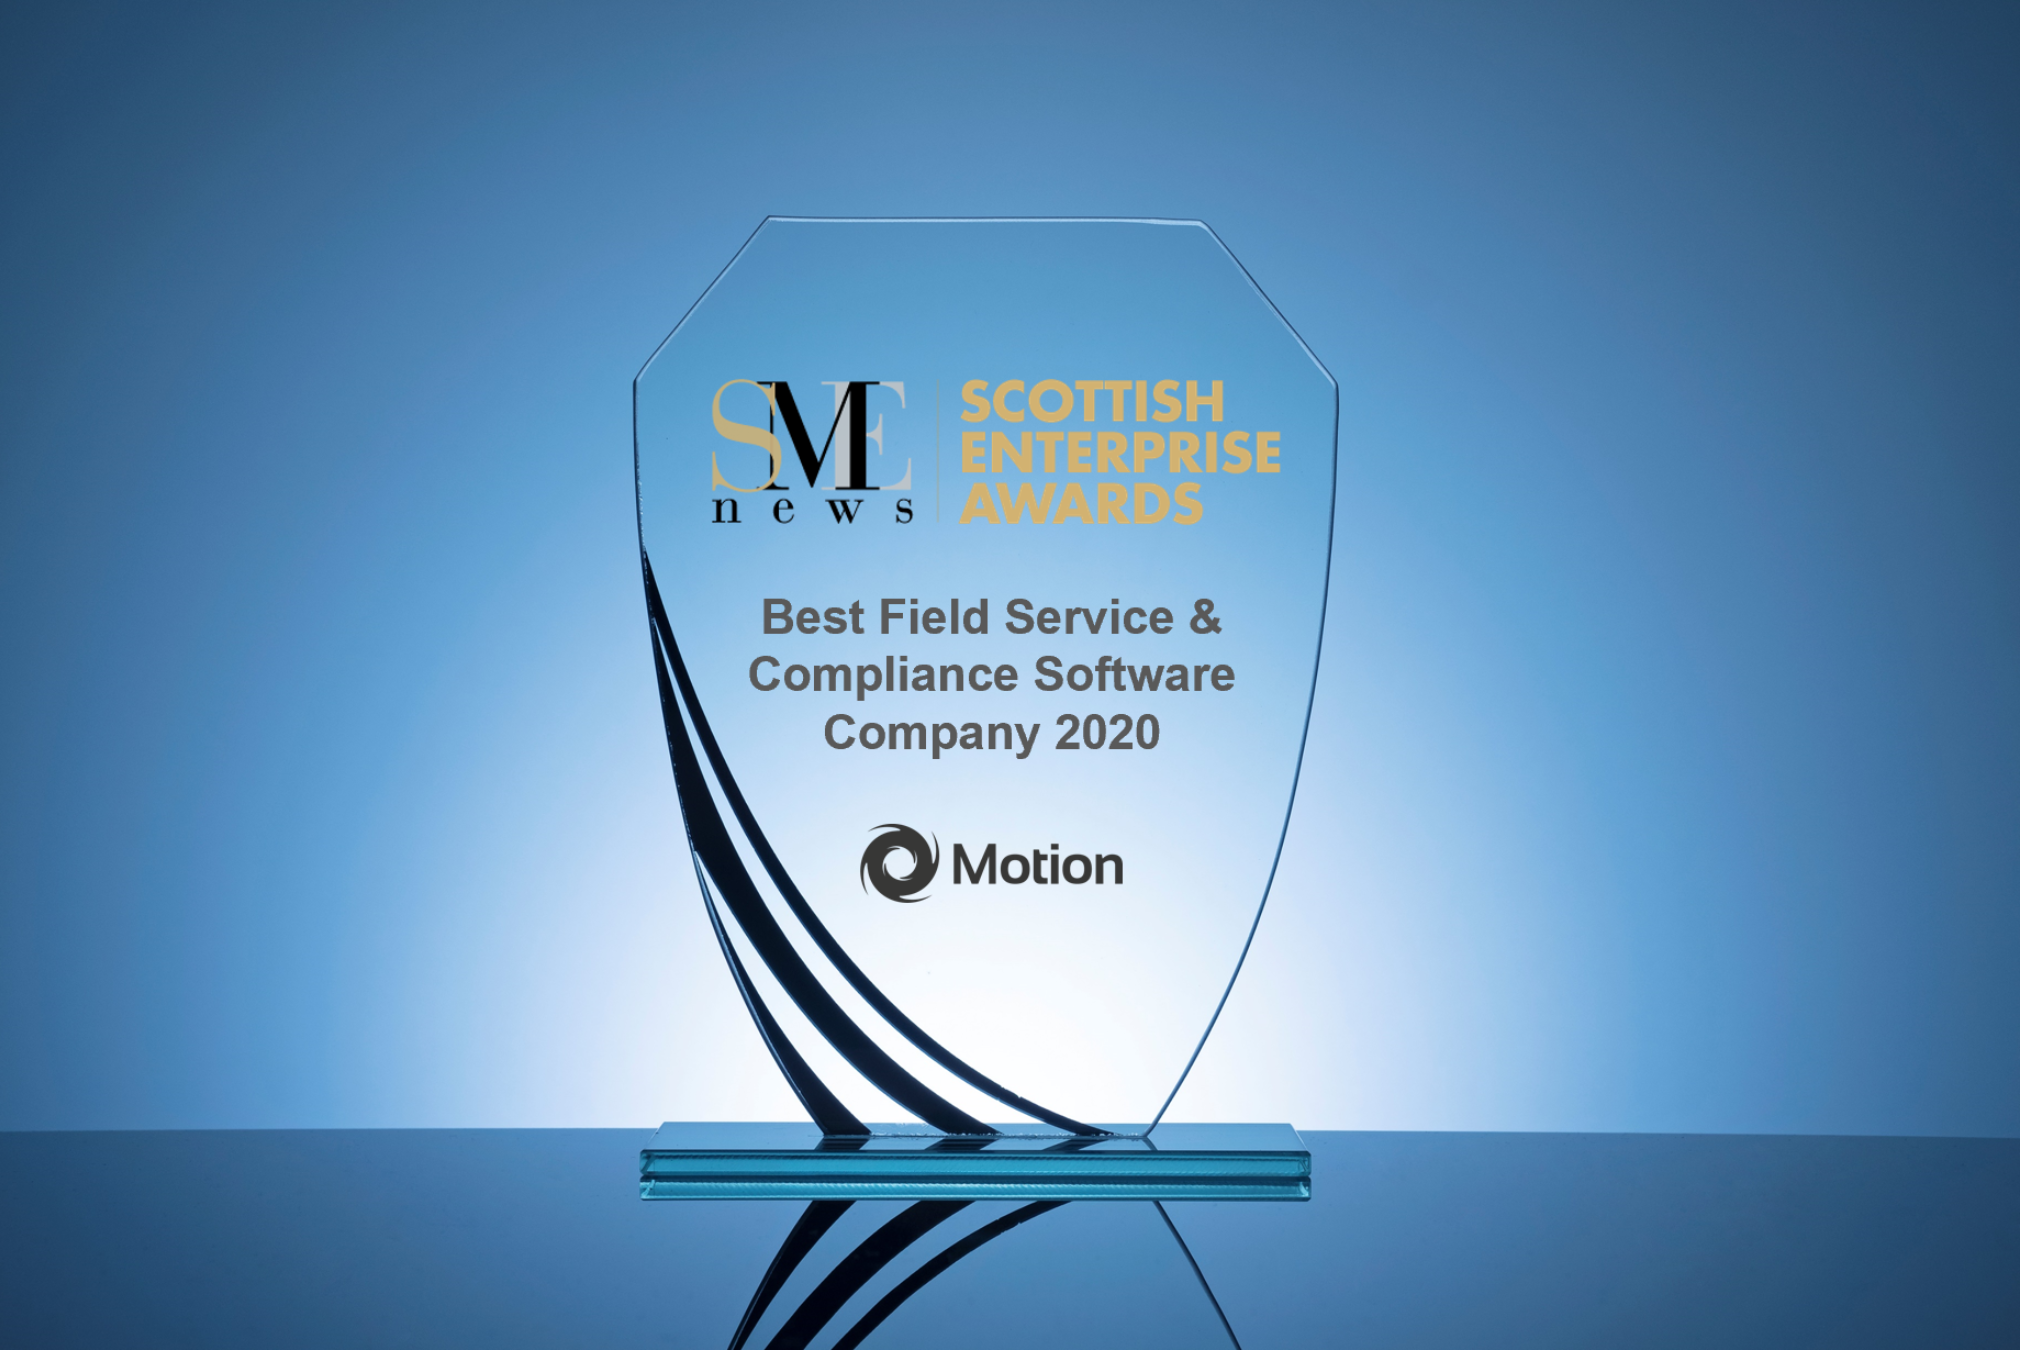 Motion Software Announced Best Field Service & Compliance Software Company 2020